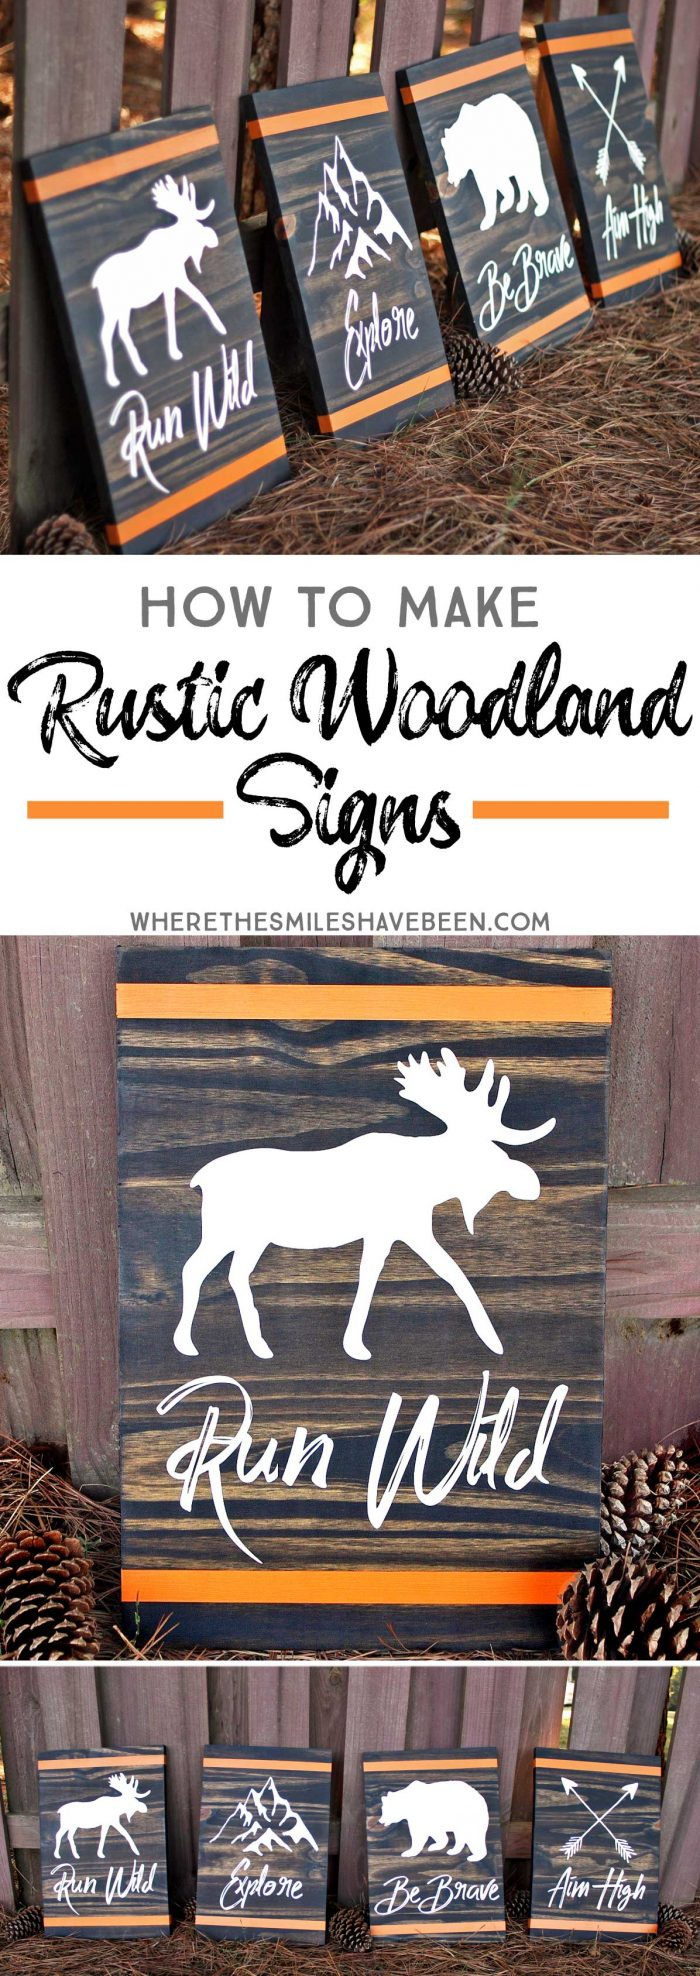 How to Make Rustic Woodland Signs.